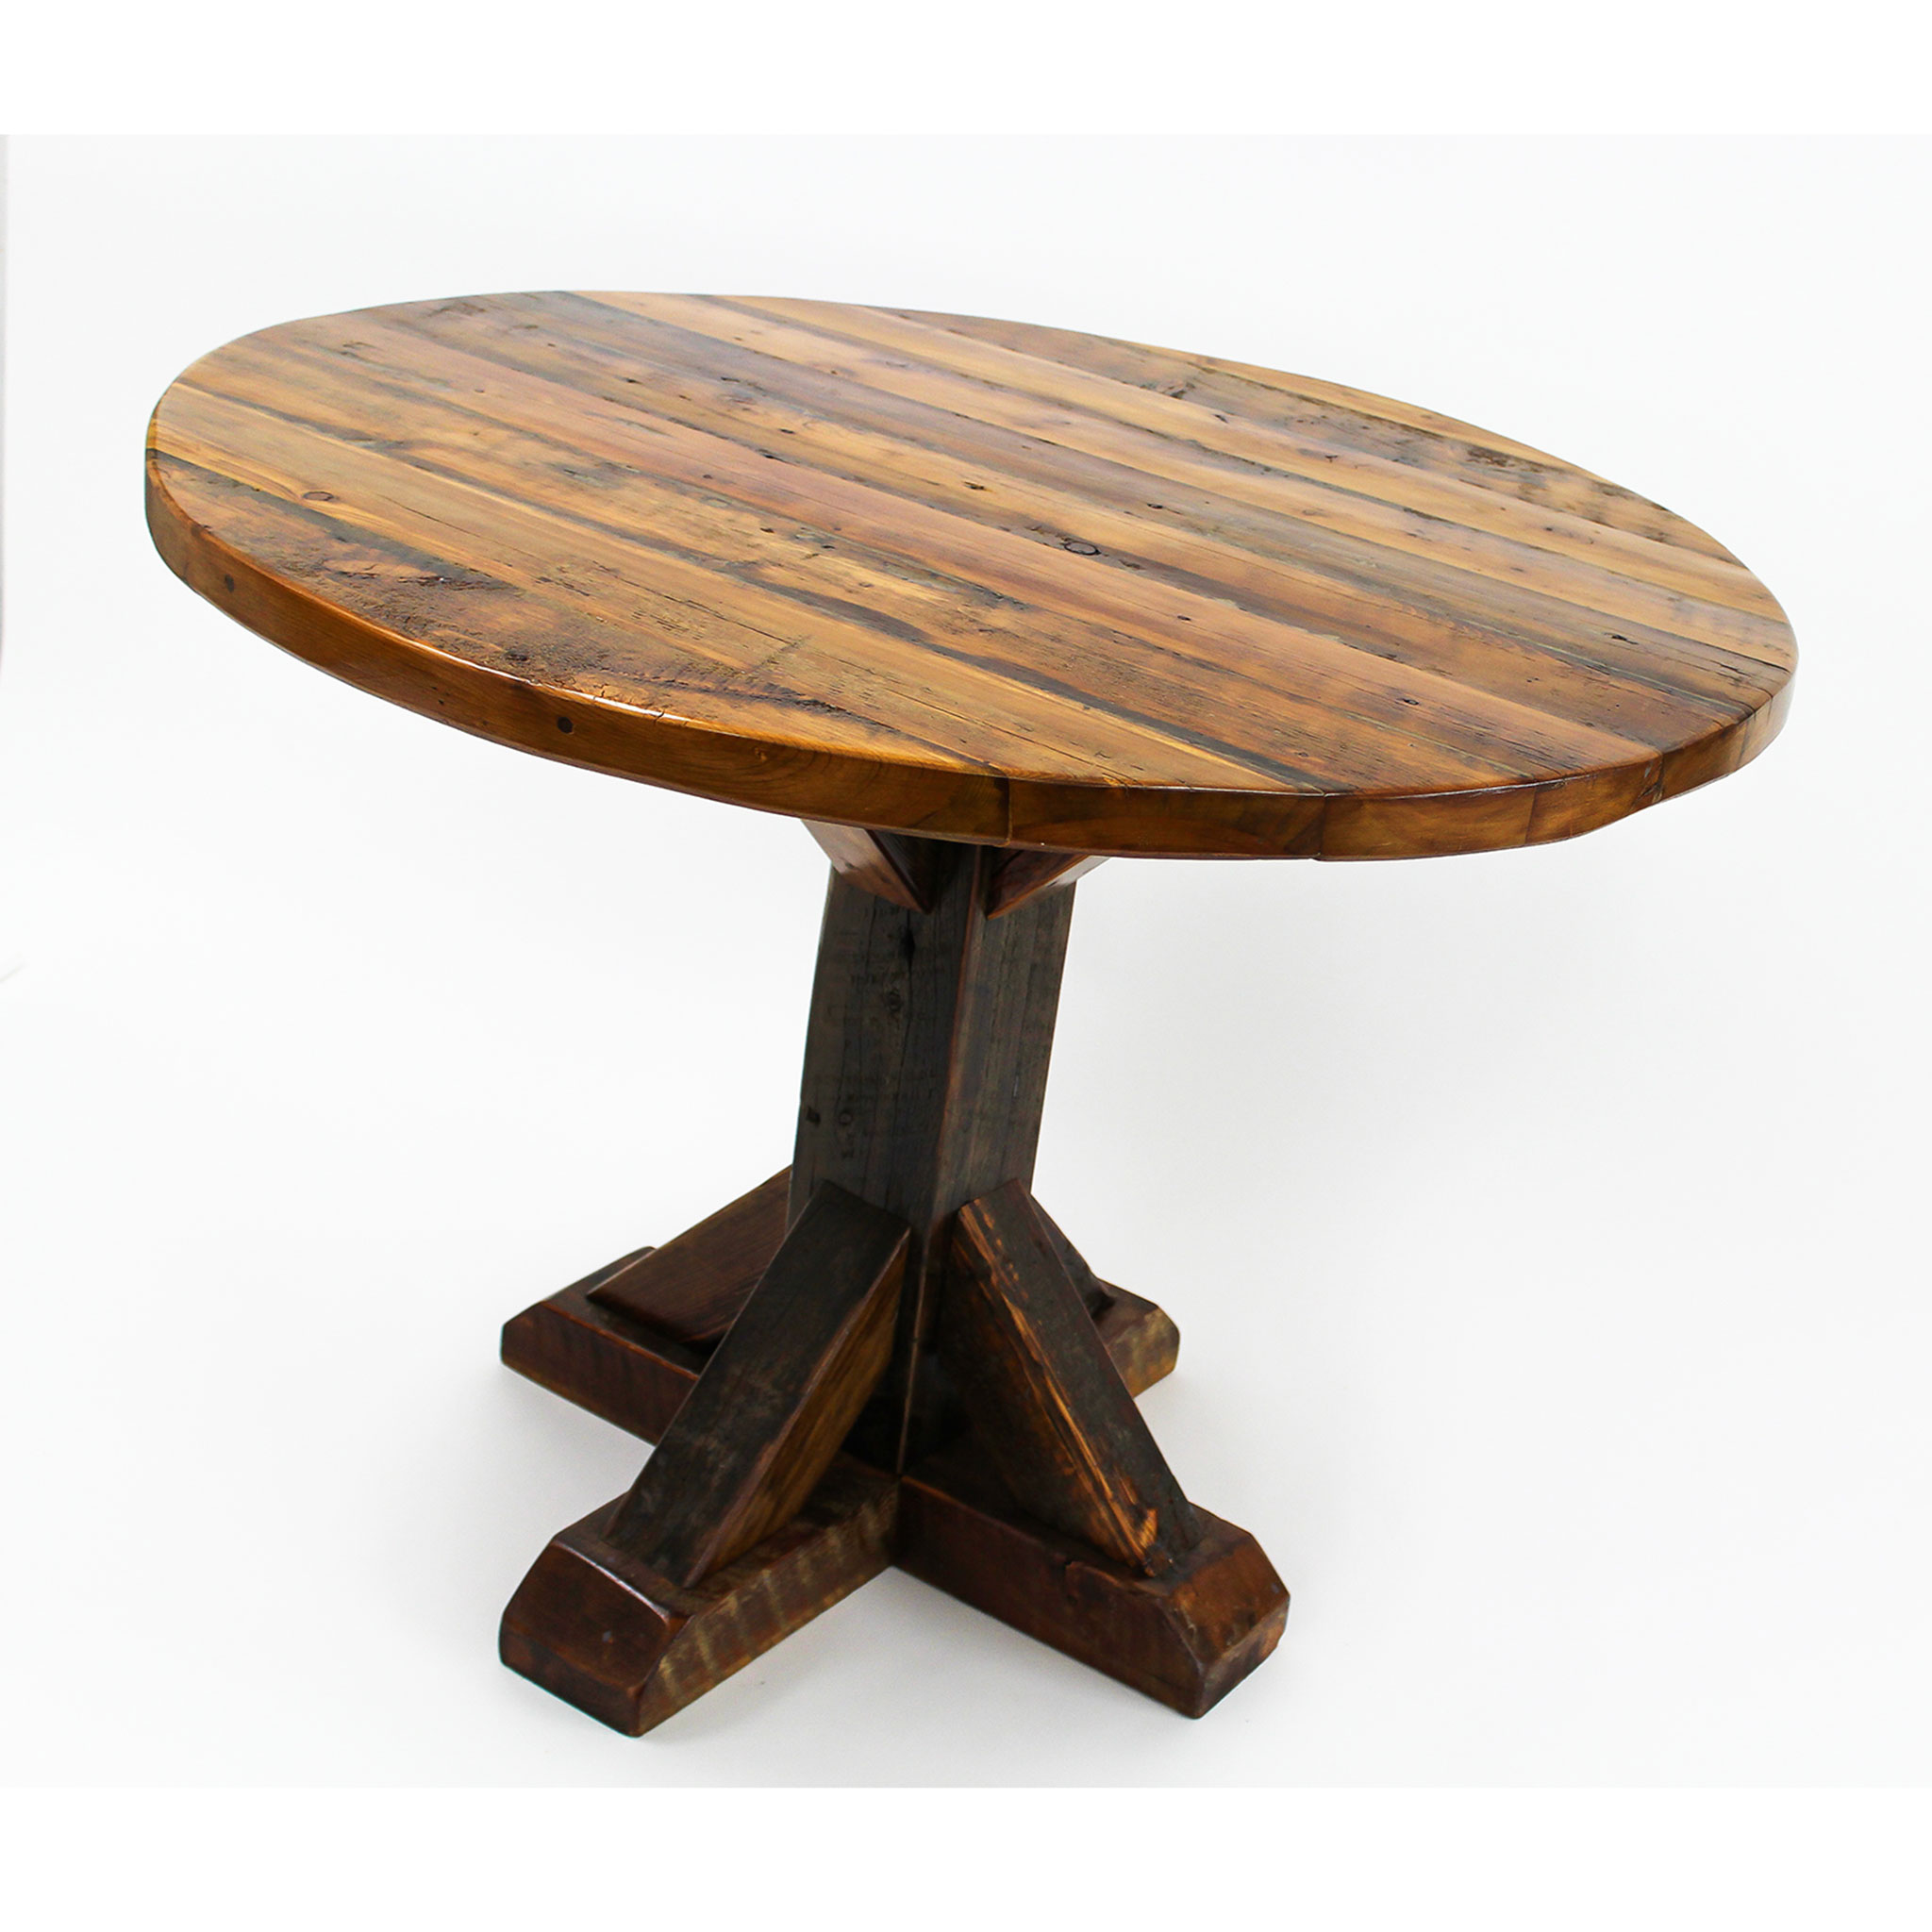 TABLE-ROUND-PEDESTAL-BARNWOOD.jpg